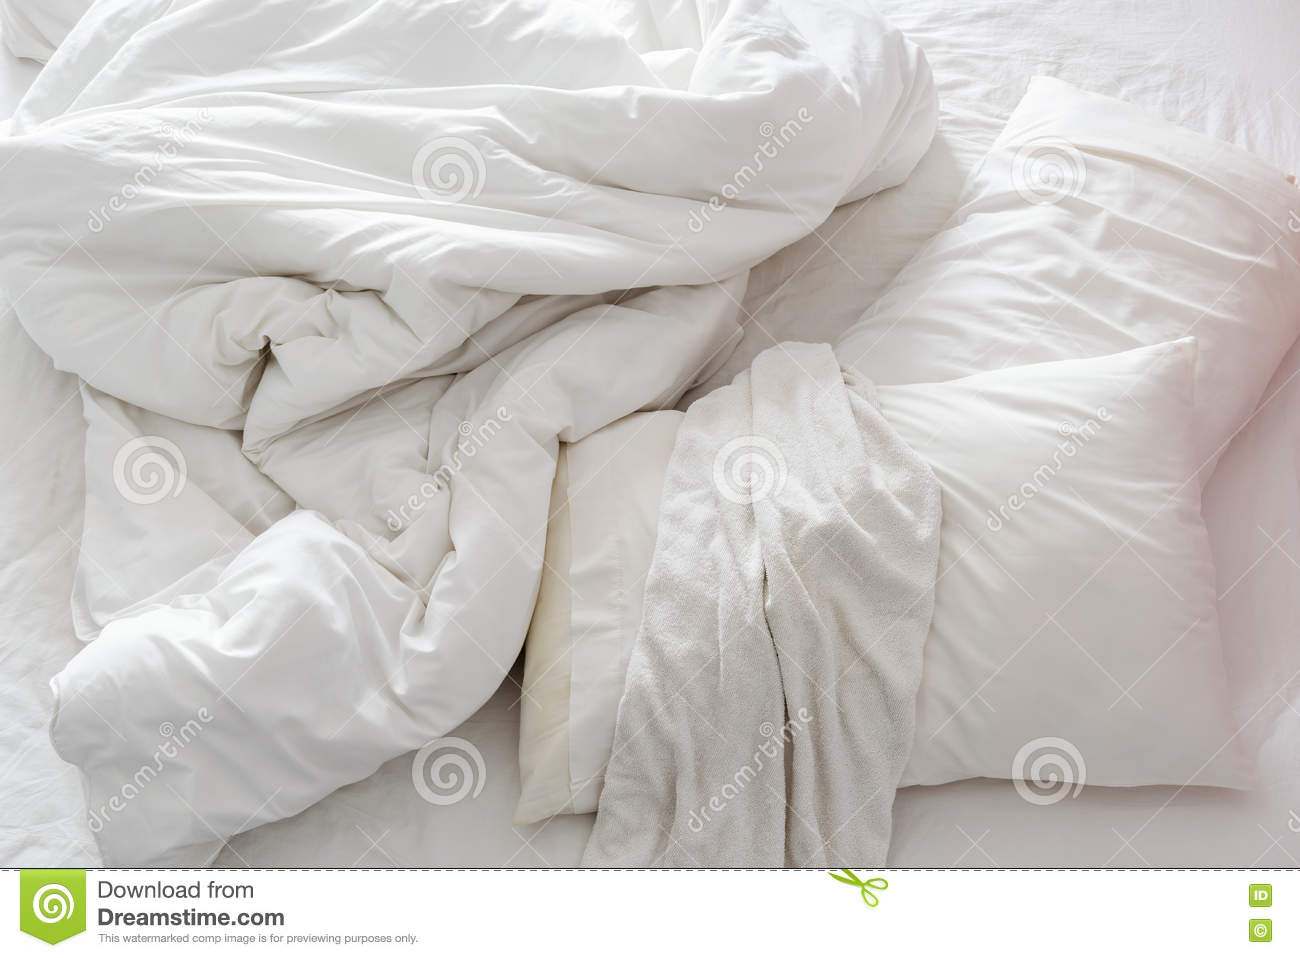 Rumpled bed sheet - Top View Of An Unmade Bed In A Bedroom With Crumpled Bed Sheet